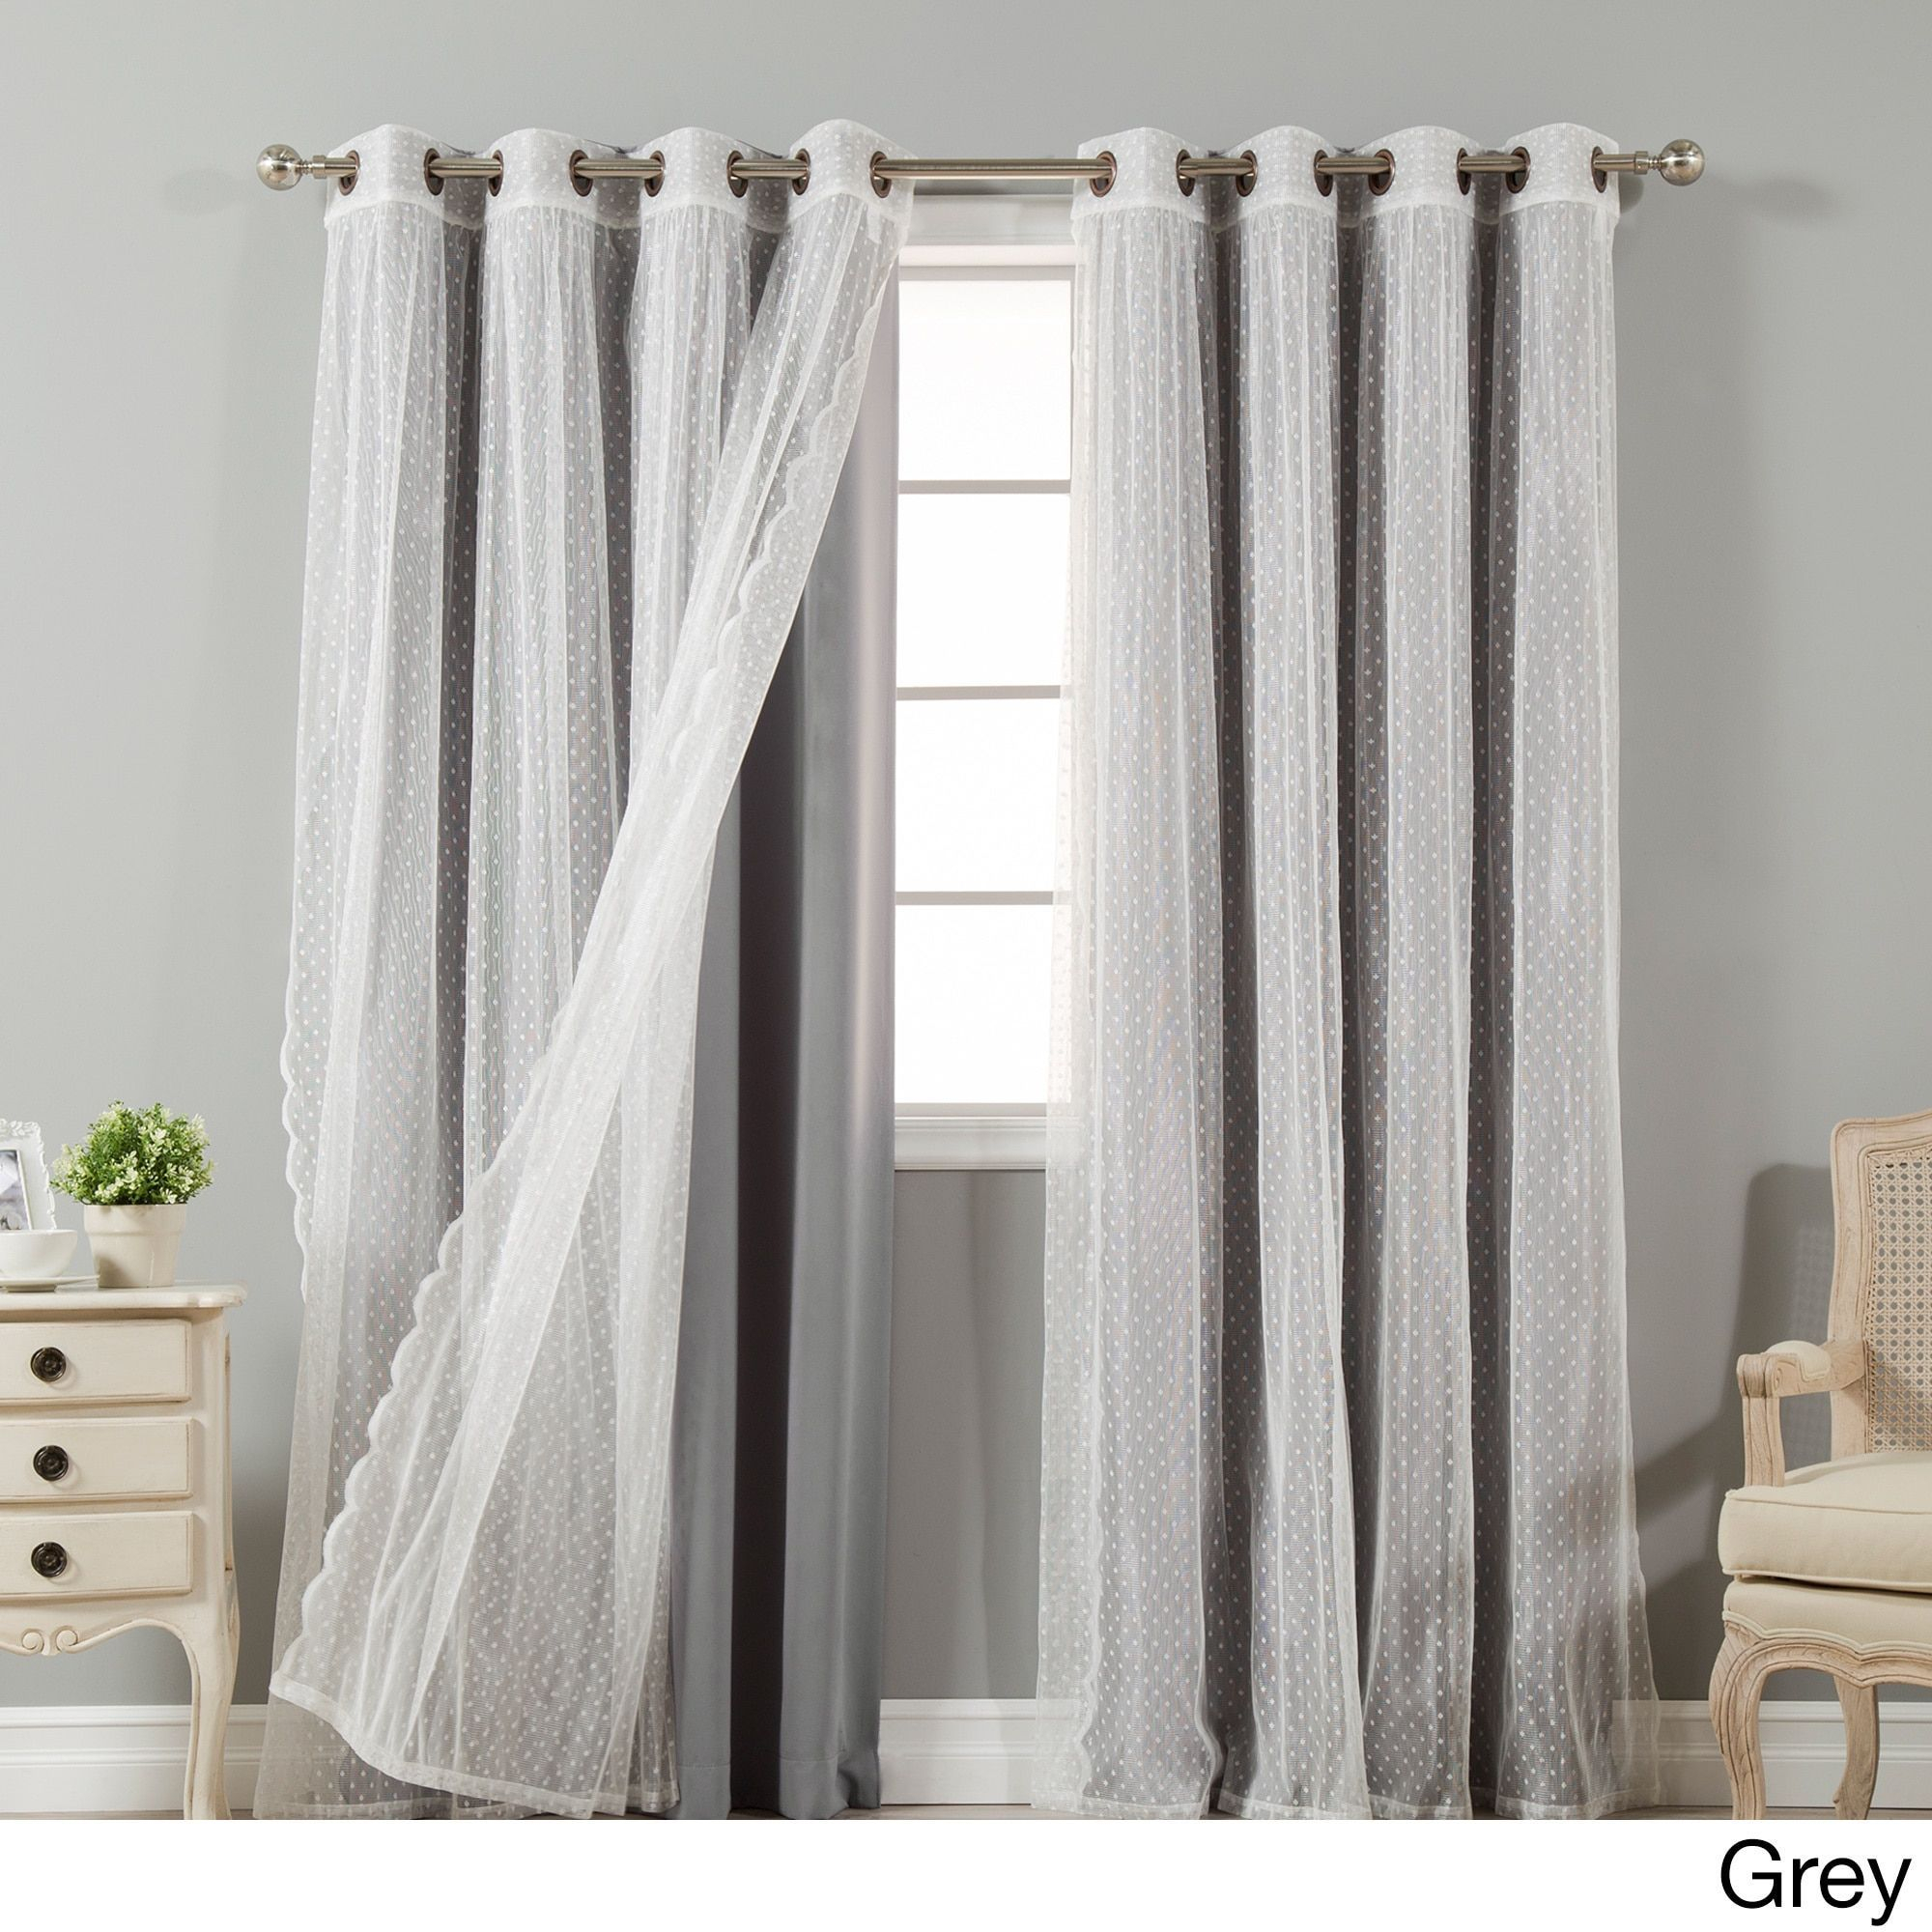 Aurora Home Mix And Match Curtains Blackout And Dot Sheer 84 In Tulle Sheer With Attached Valance And Blackout 4 Piece Curtain Panel Pairs (View 8 of 30)